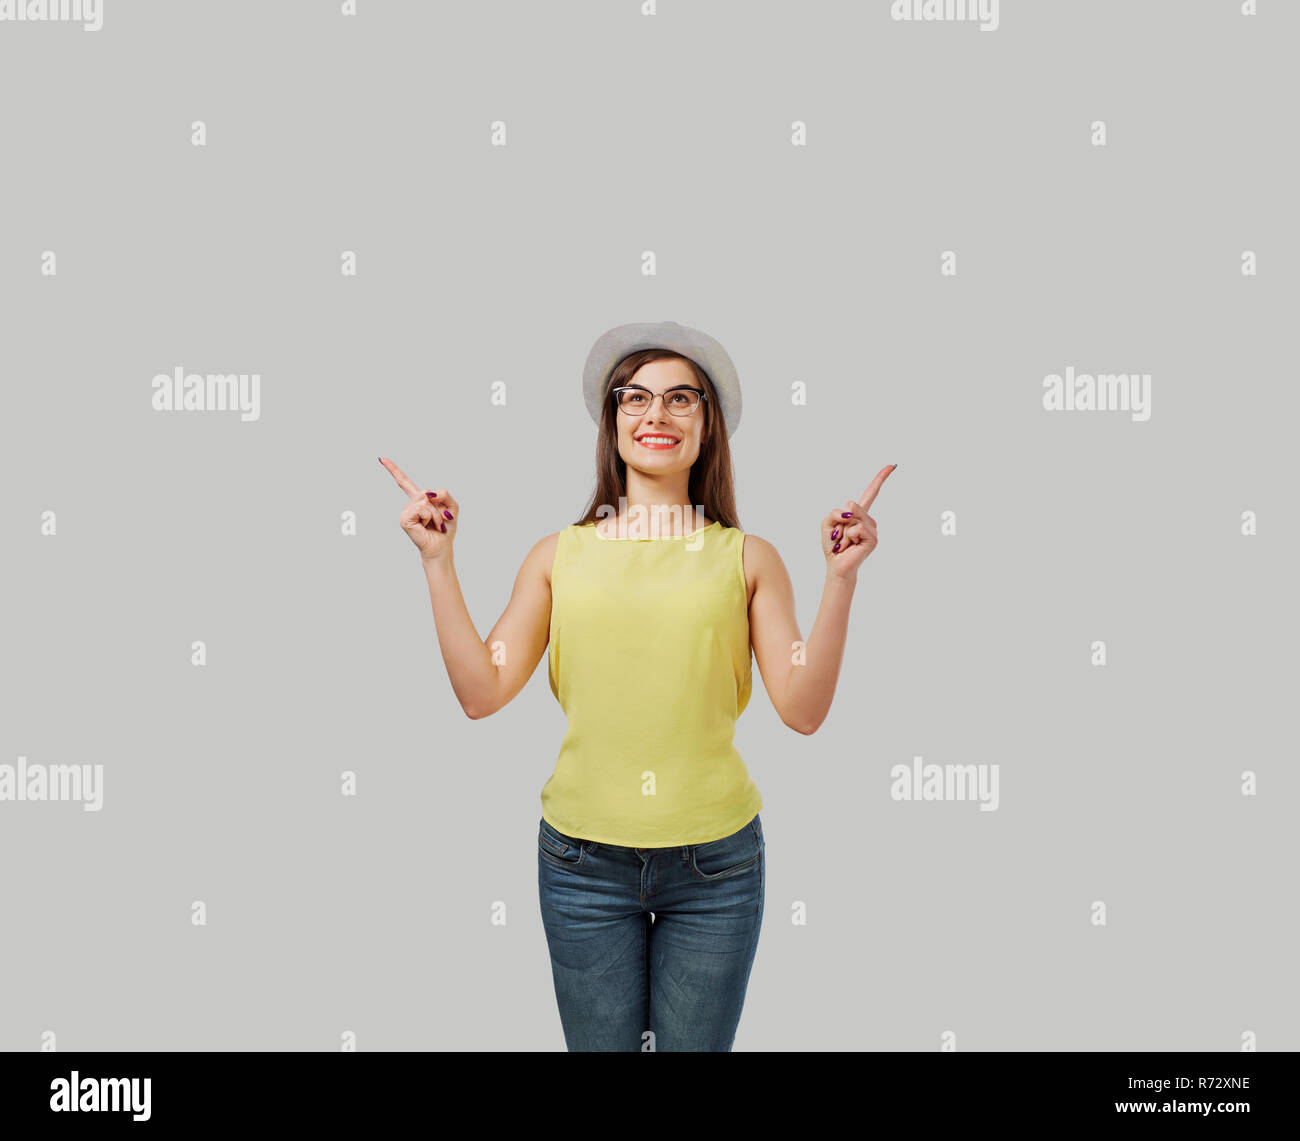 Casual woman pointing up - Stock Image